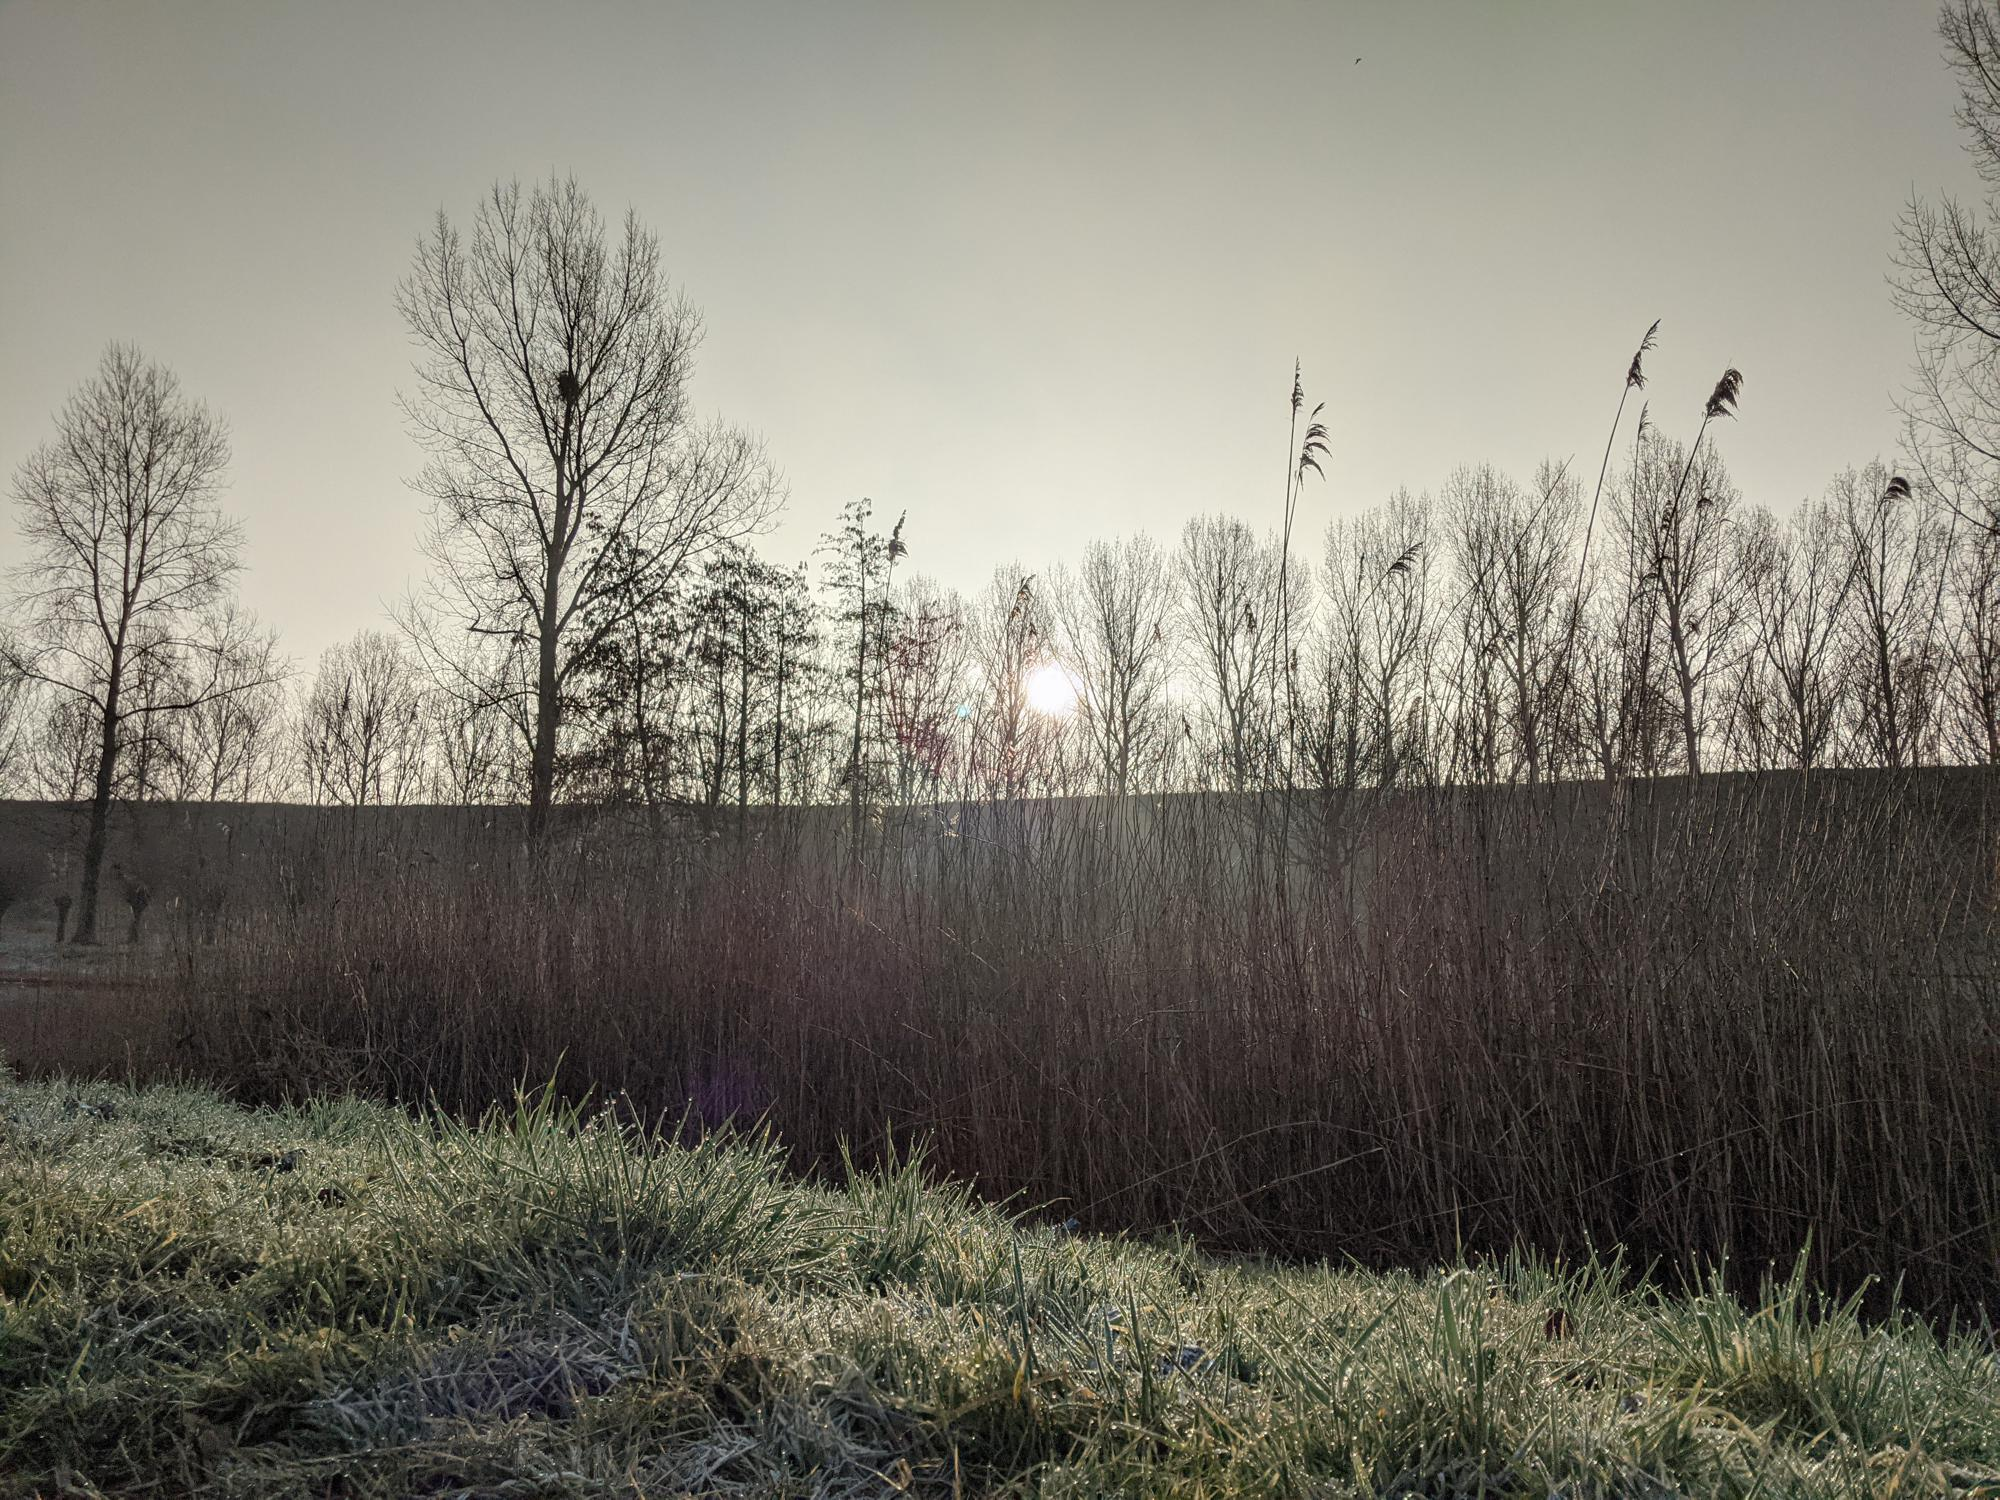 Early sun shining through trees and reeds